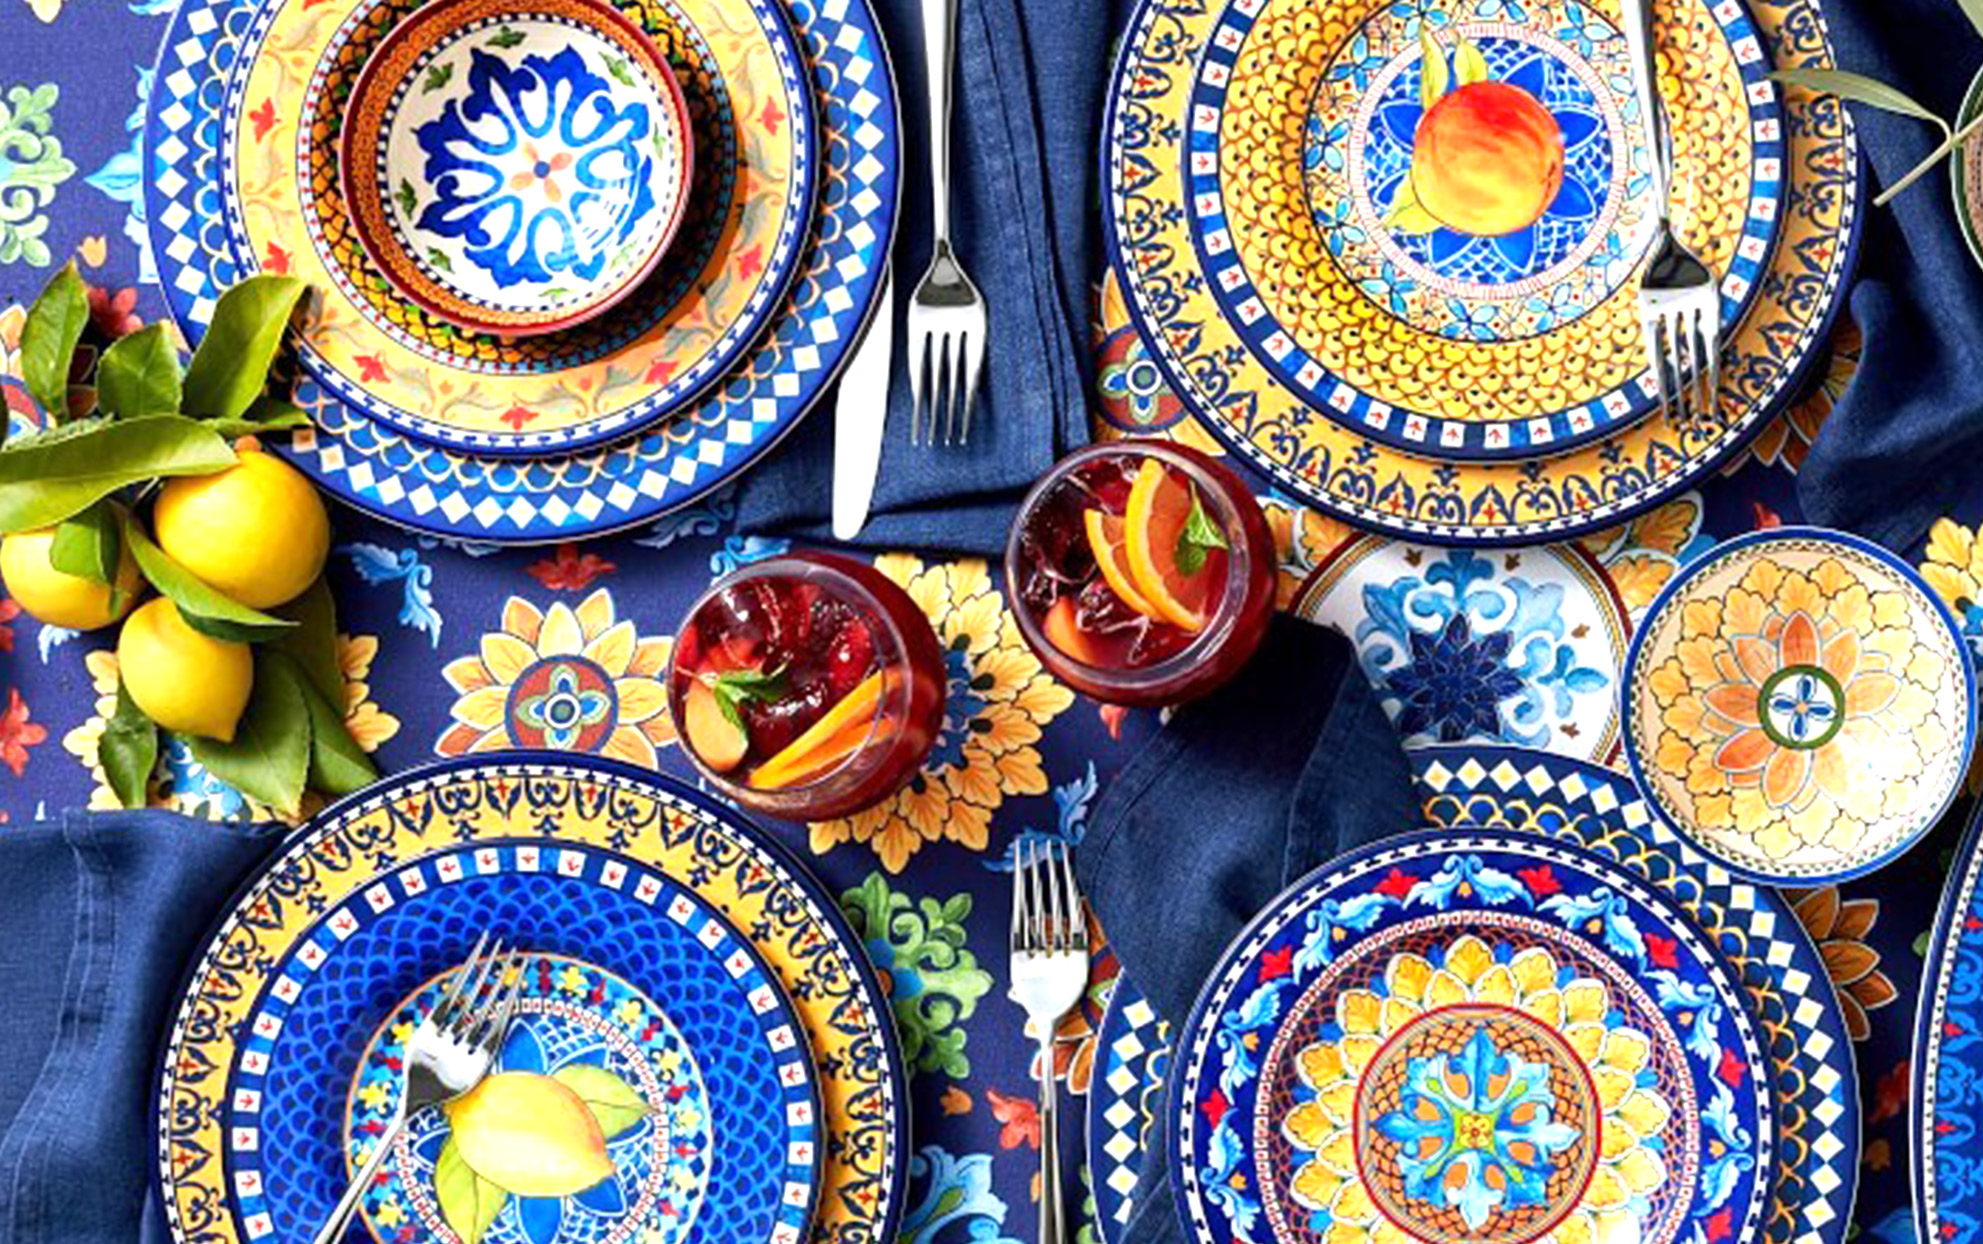 Overhead shot of a set dining table with blue patterned plates and linens